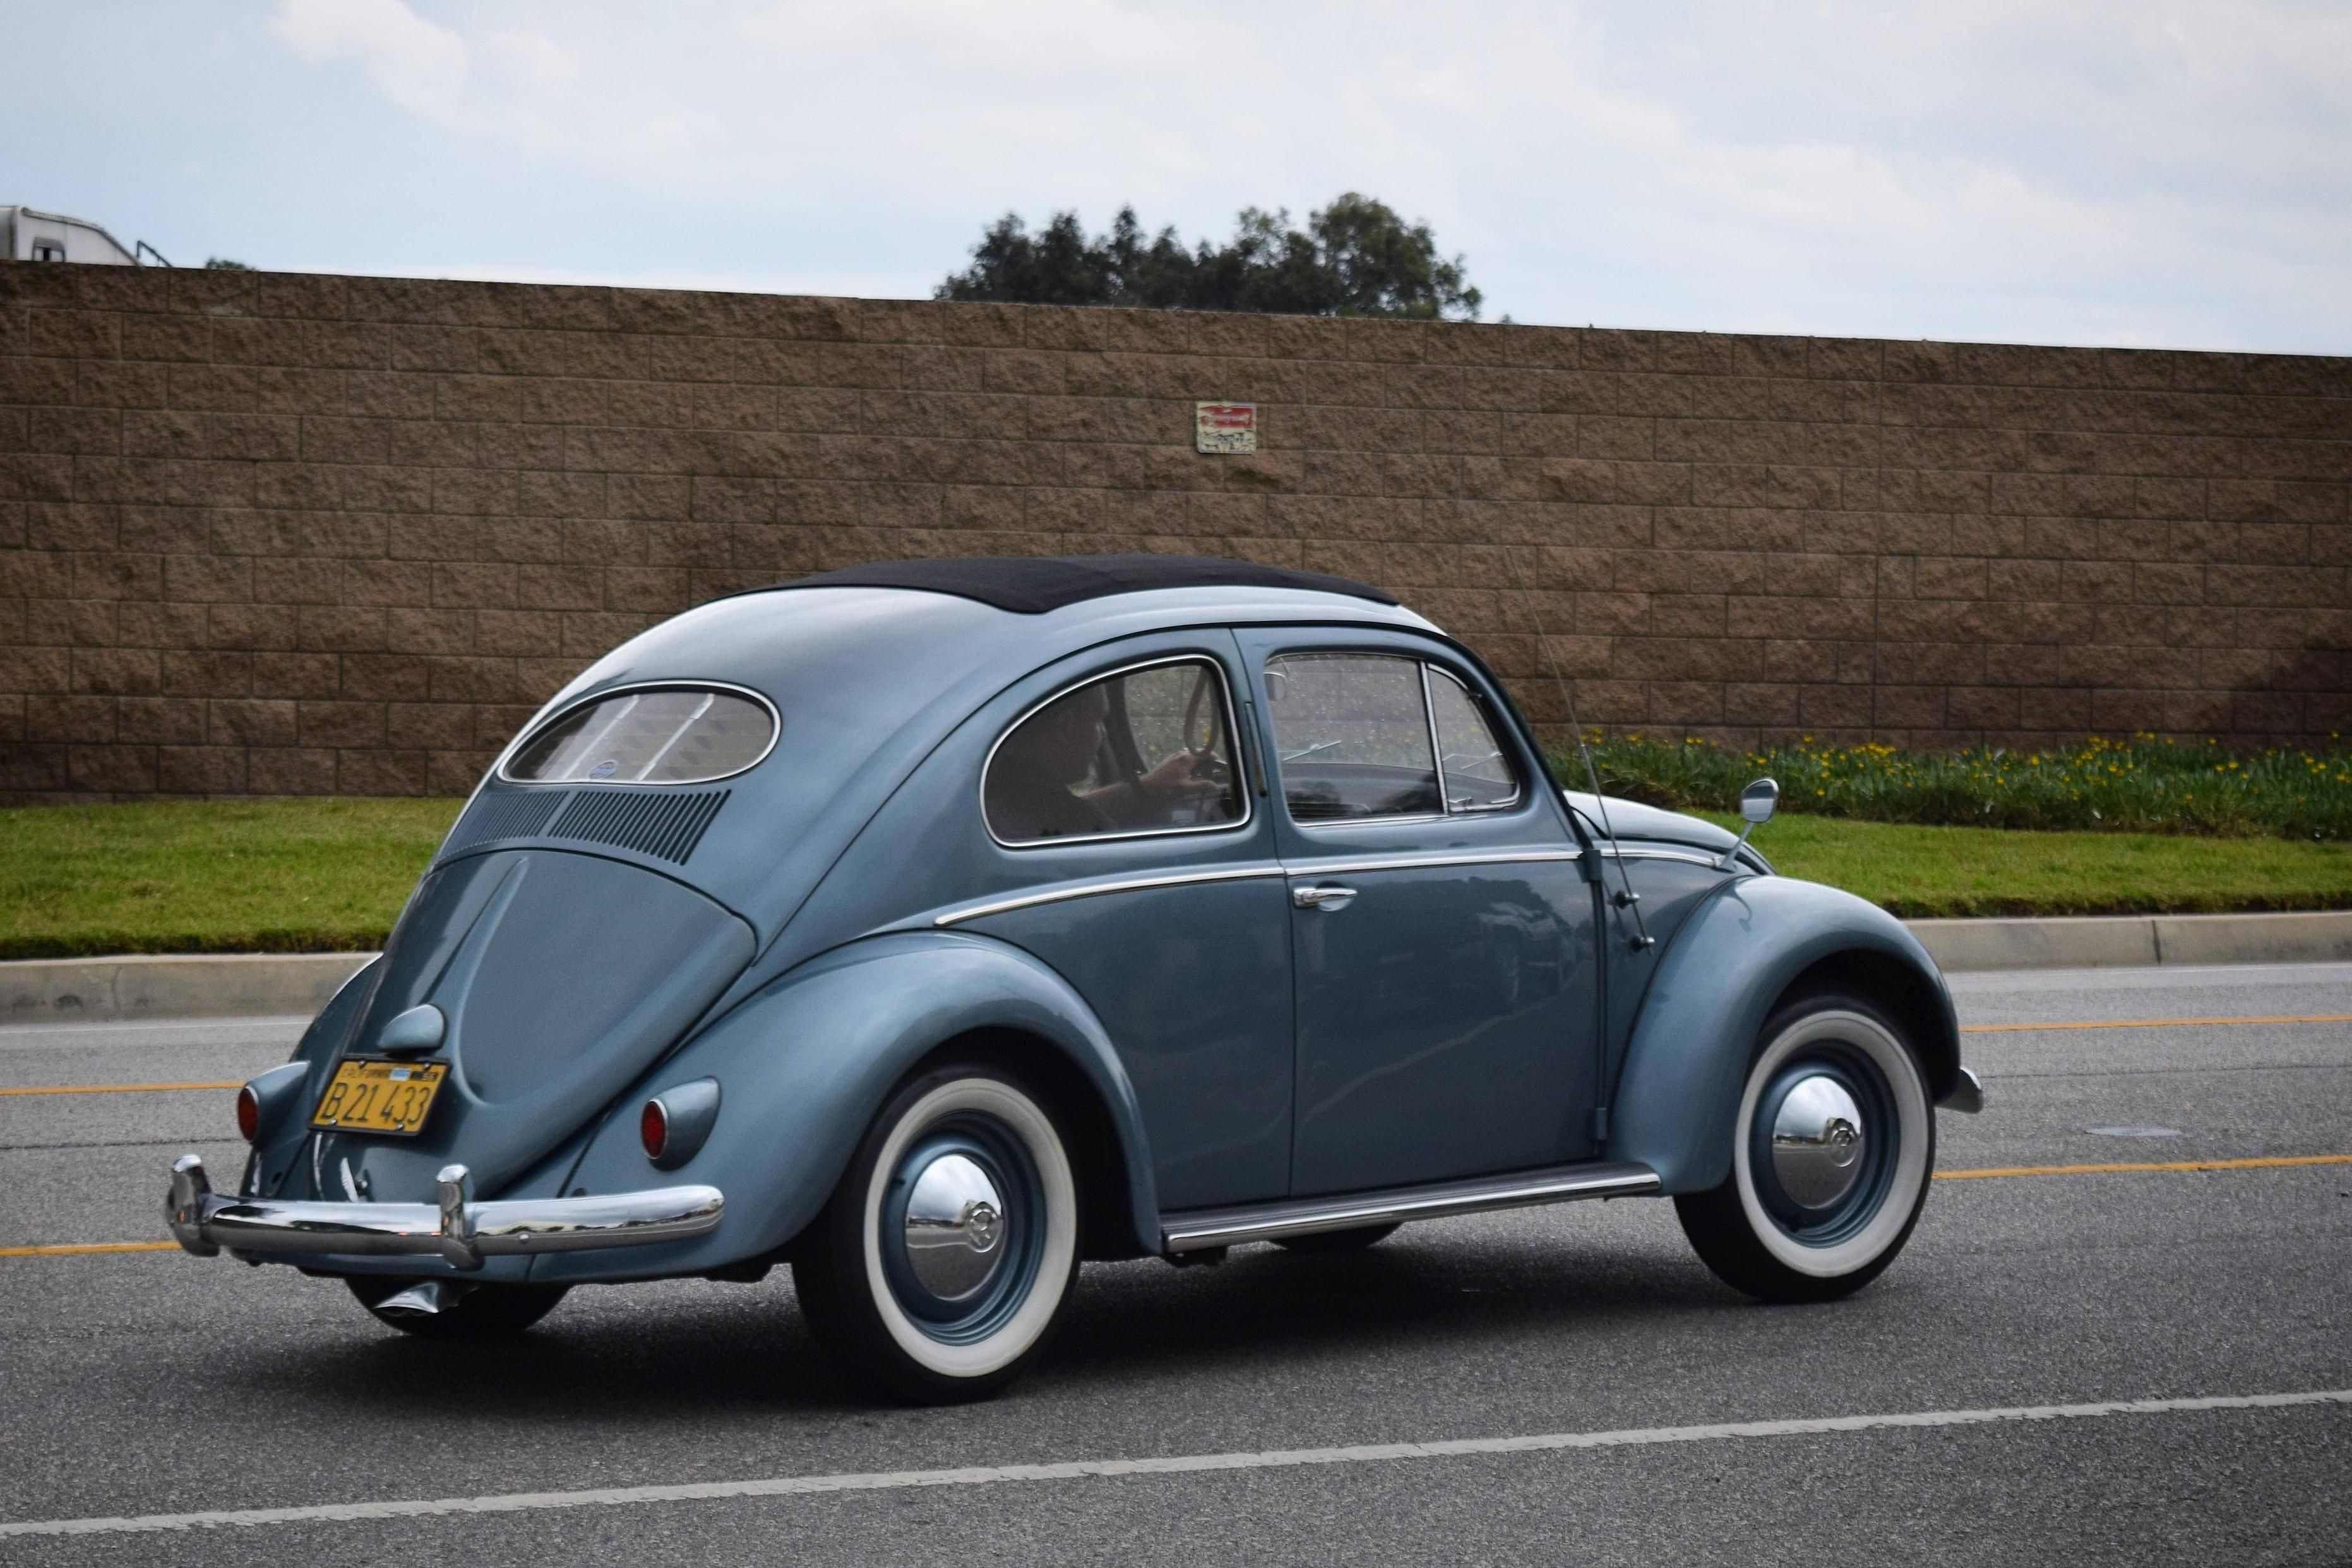 Looking For Similar Pins Follow Me Http Kohlsson Link 1w5n6ws Kevinohlsson Strato Silver Ragtop Beetle 4139x2760 Oc